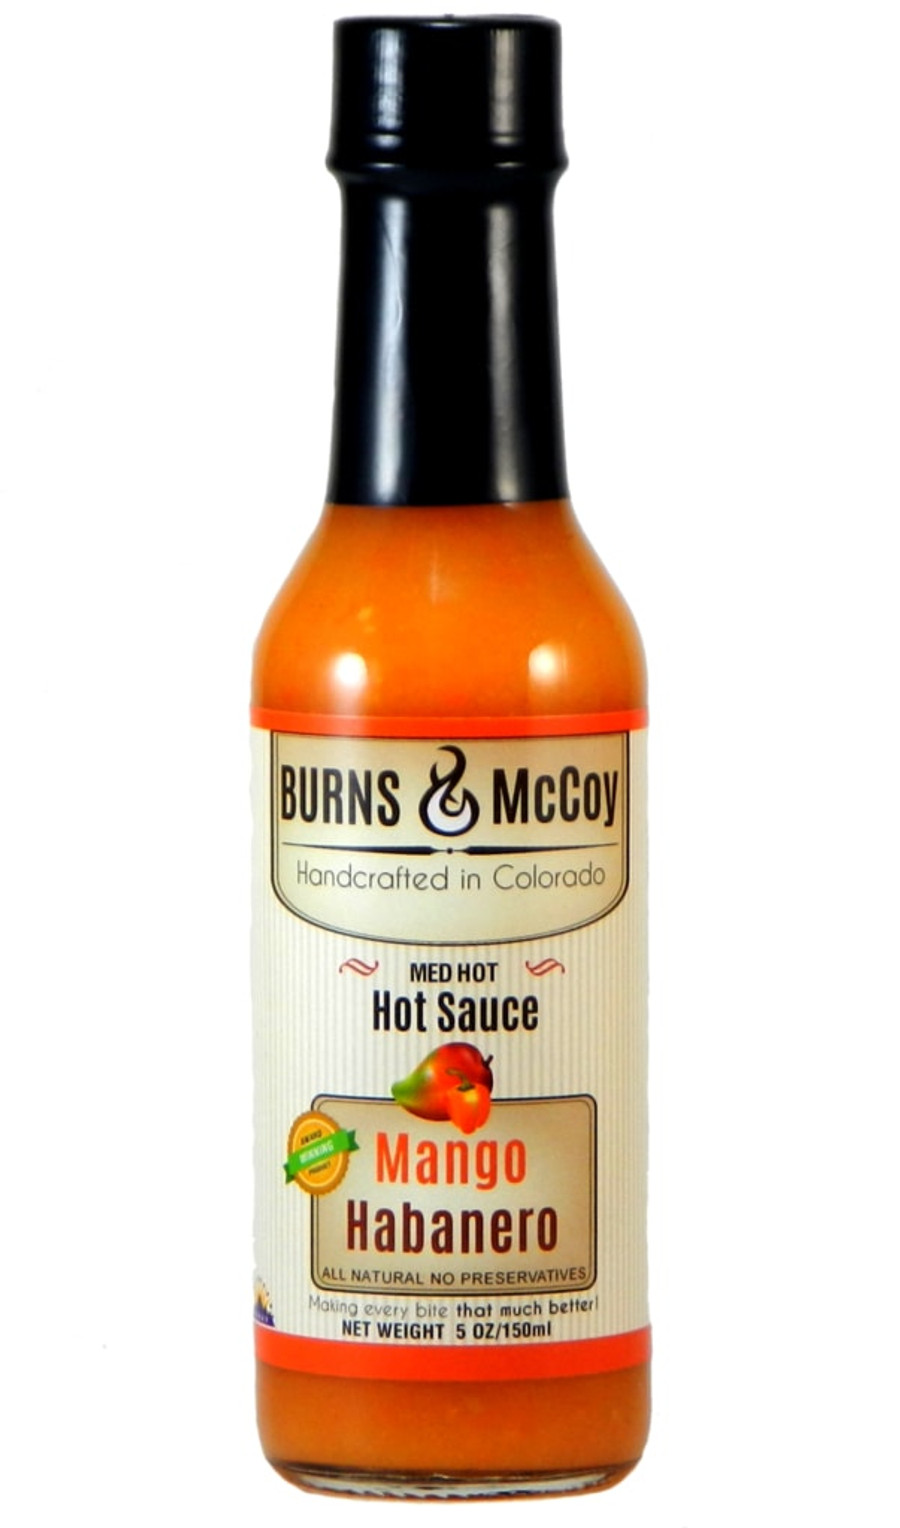 Burns & McCoy Mango Habanero sold online at PepperExplosion.com